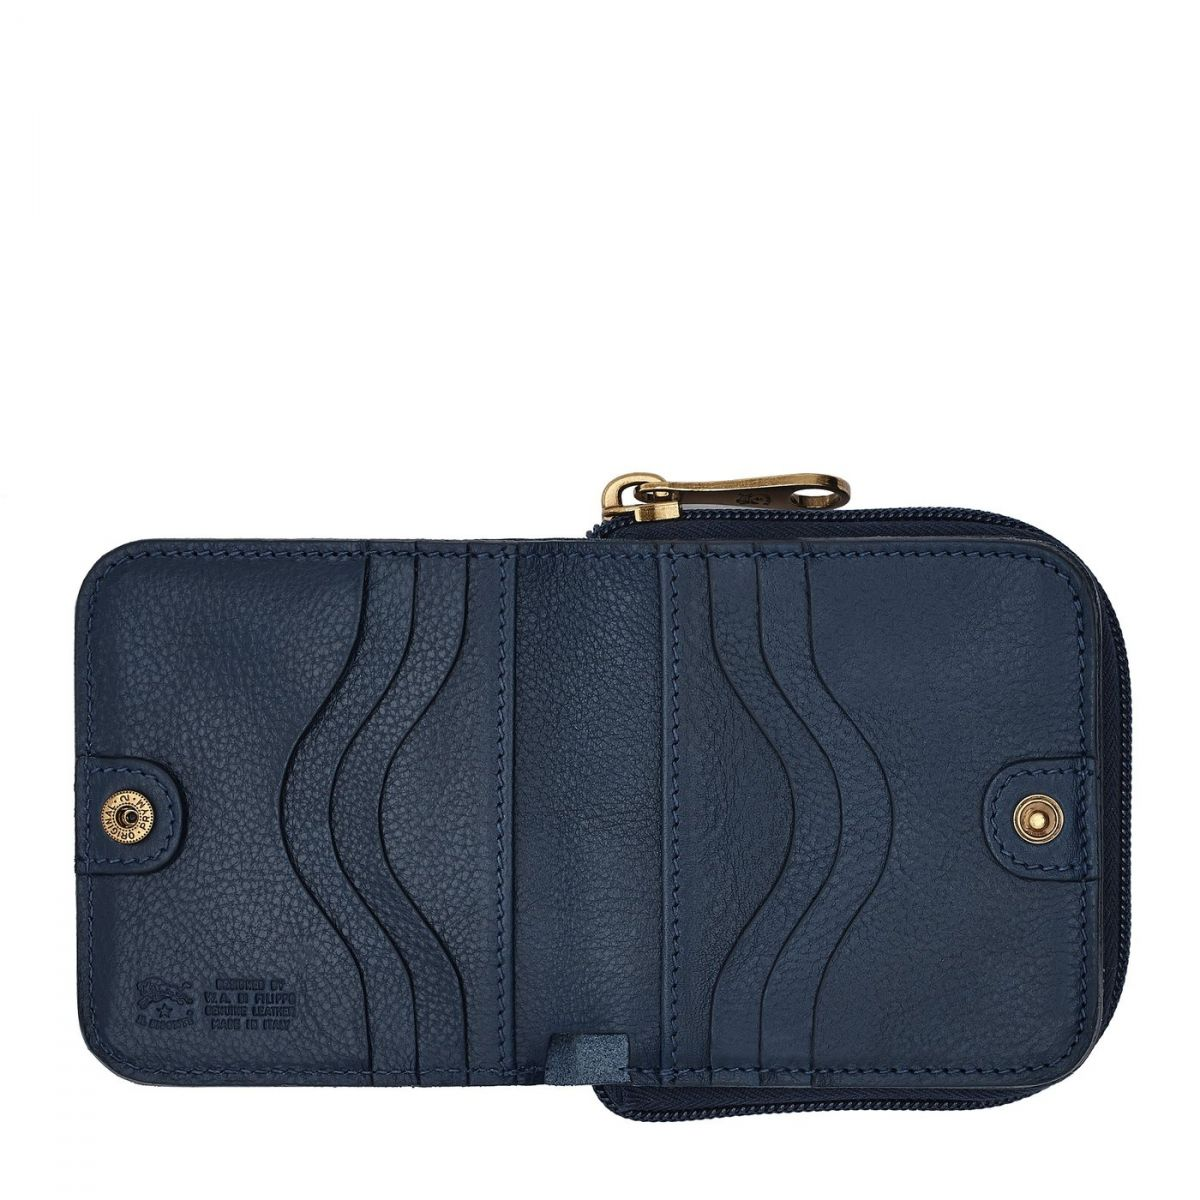 Women's Wallet  in Cowhide Leather SMW117 color Blue | Details